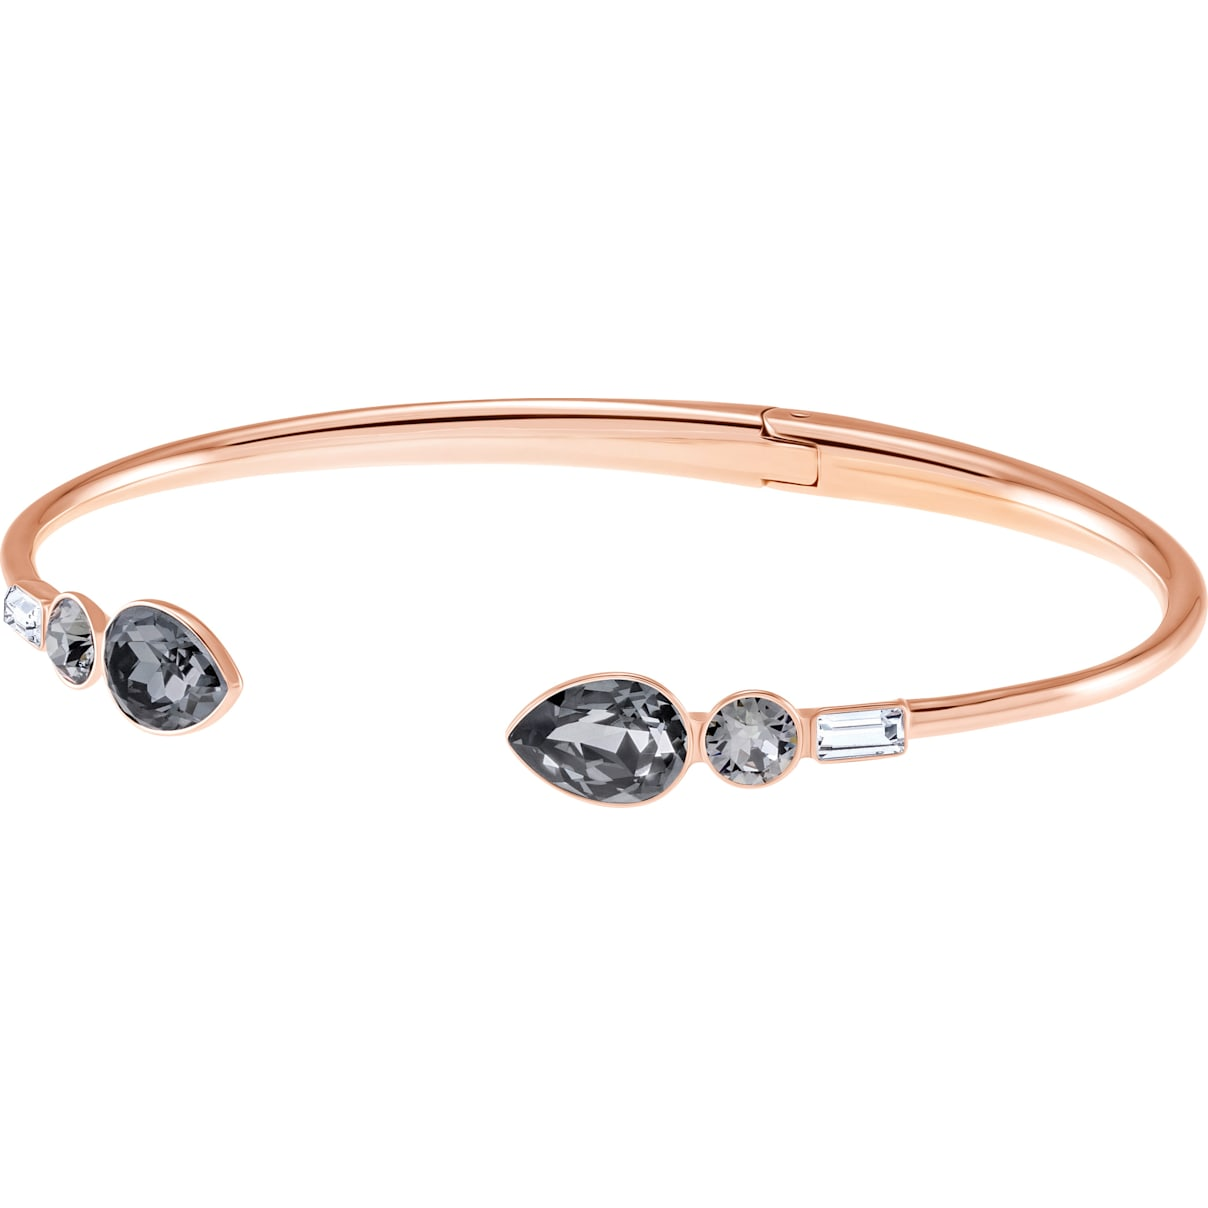 Swarovski Mix and Match Bangle, Multi-colored, Rose-gold tone plated